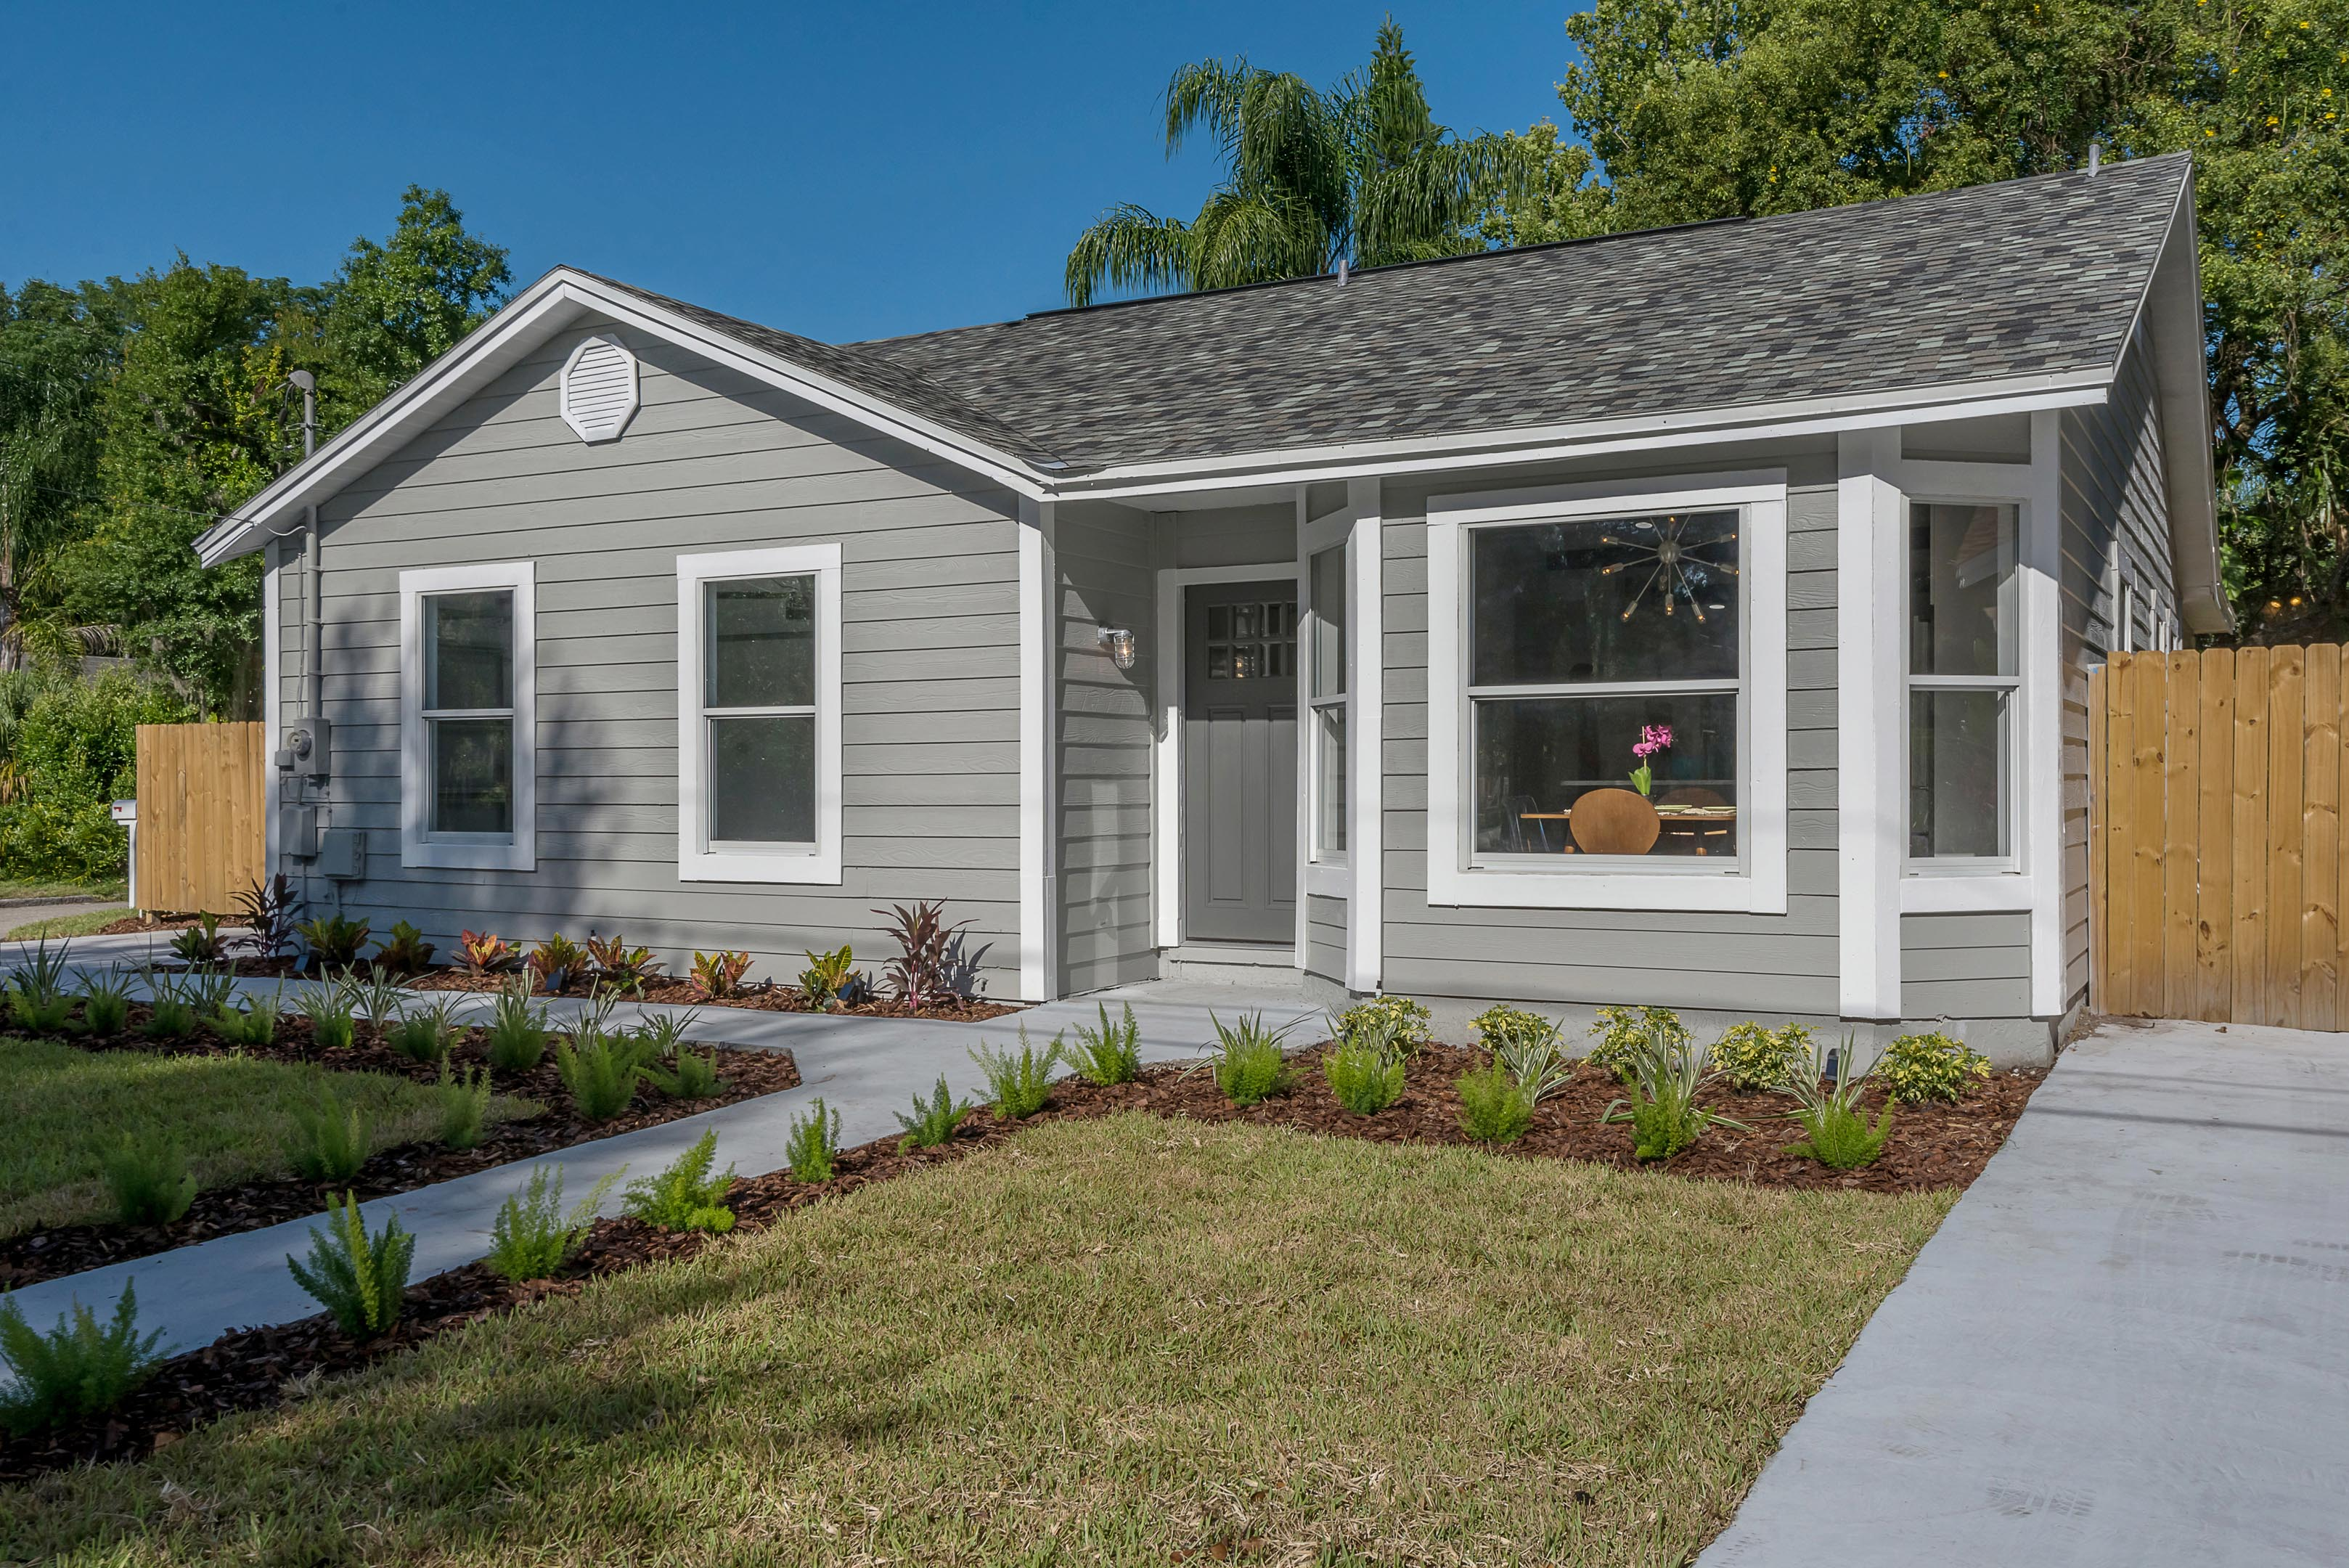 Home Staging Service Leads To Multiple Offers On This Mid